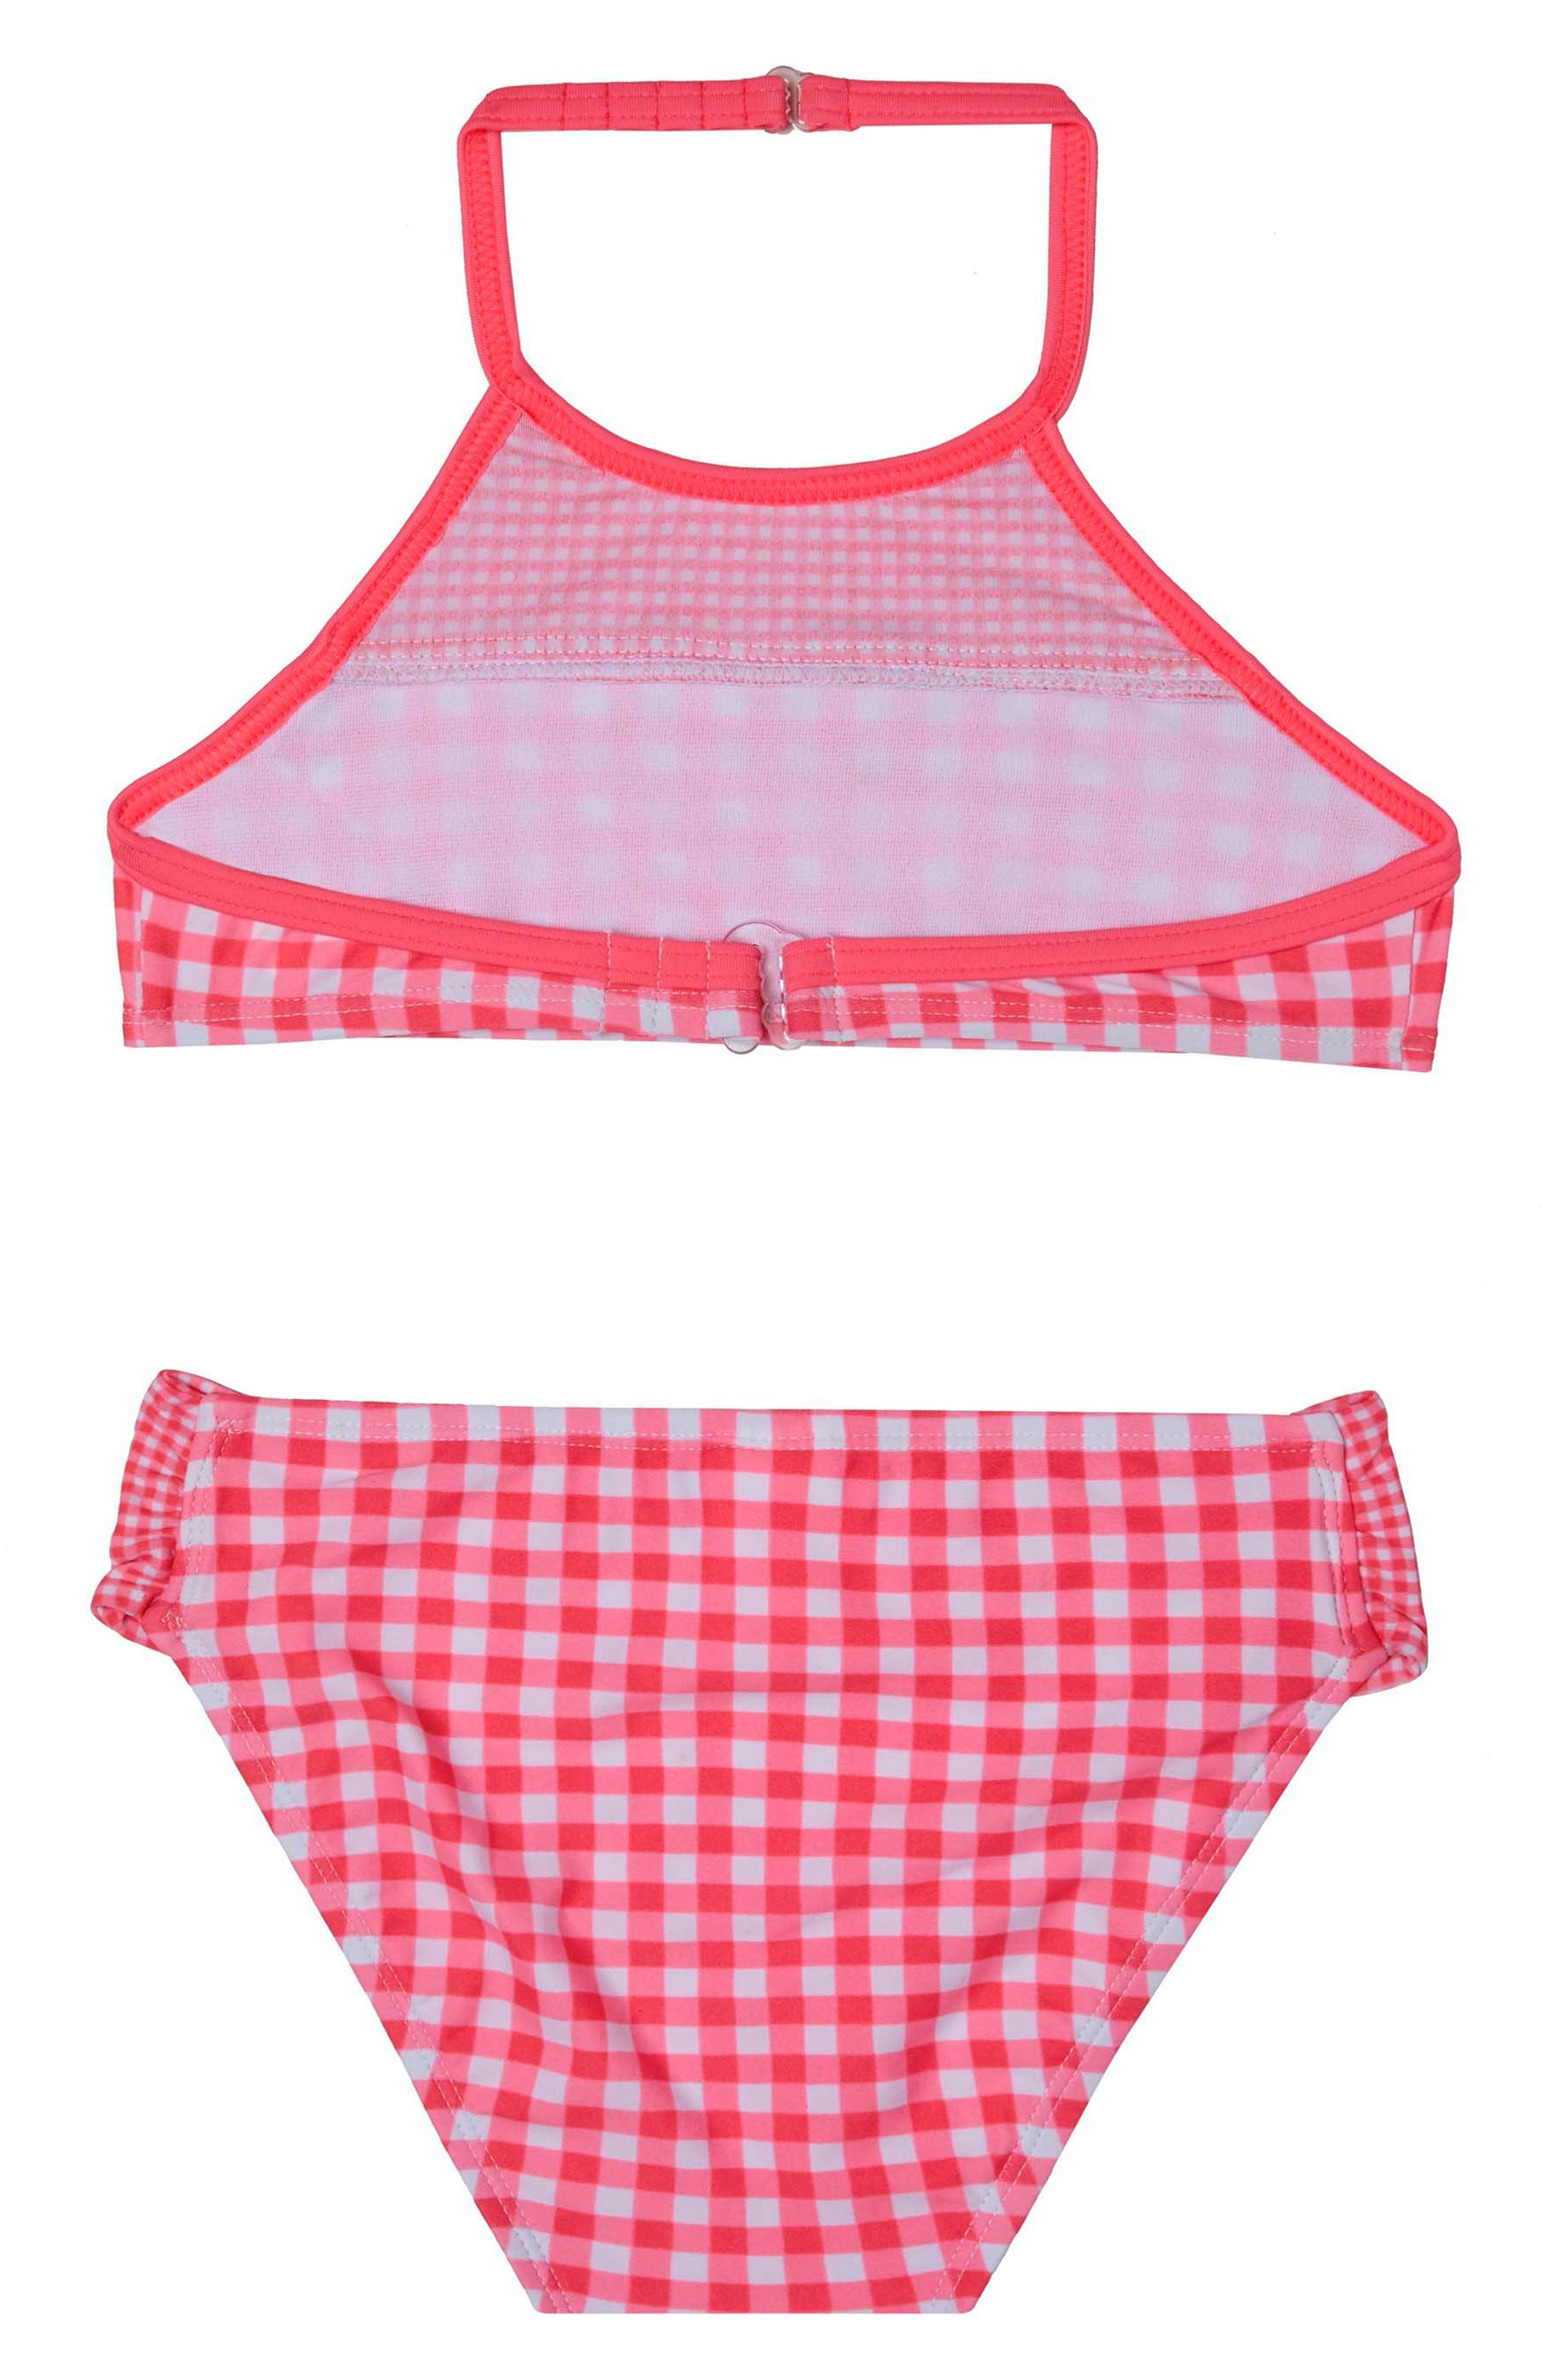 Picnic Gingham Two-Piece Swimsuit,                         Main,                         color, 621